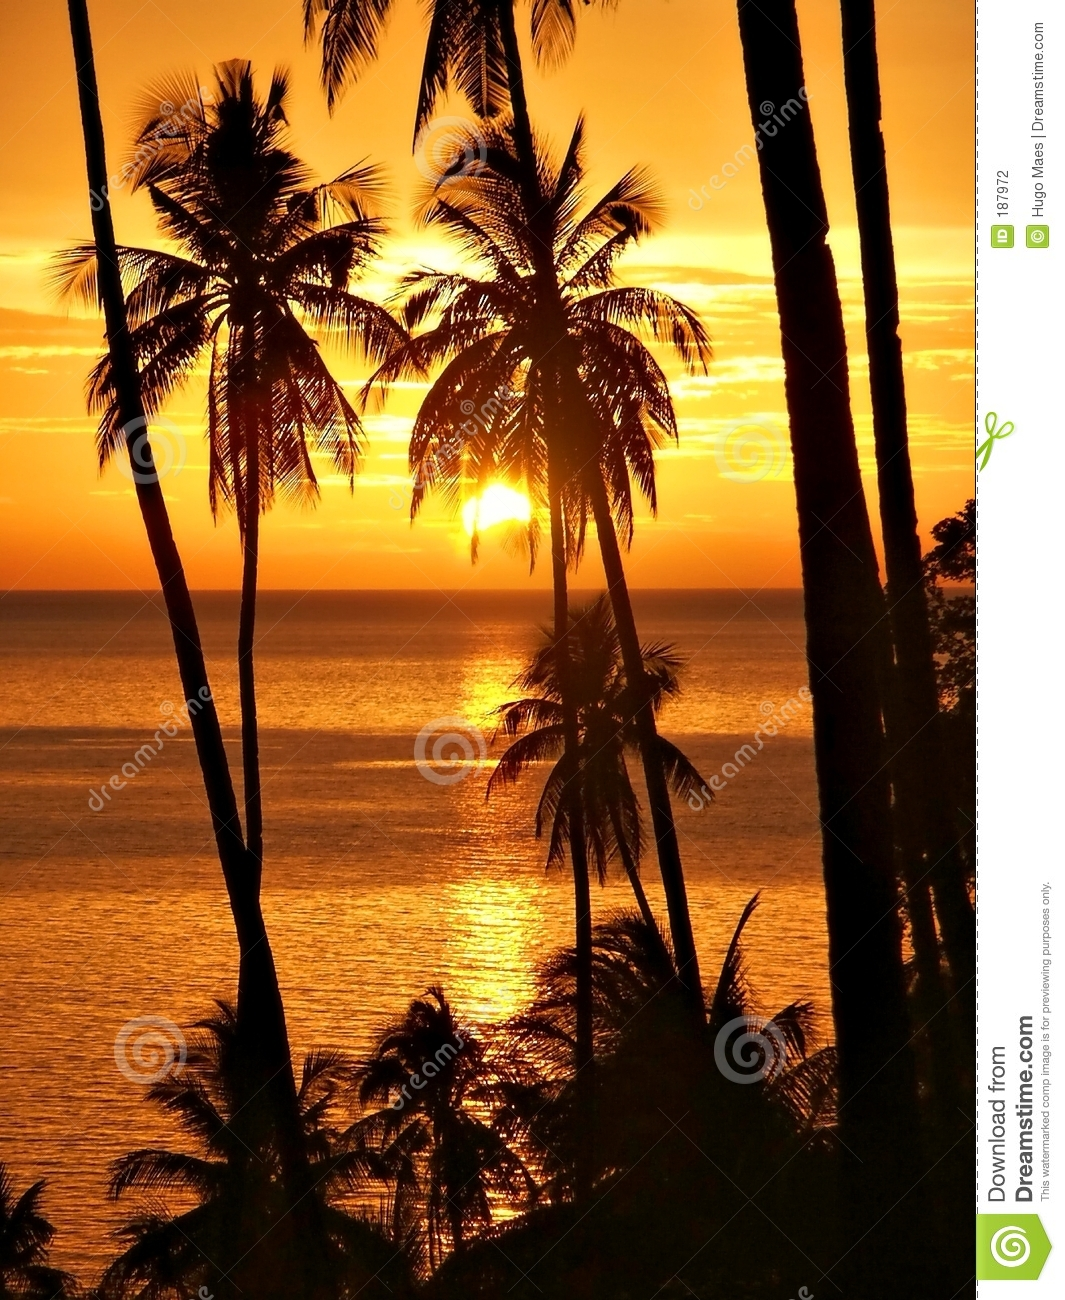 Tropical sunset with palm trees silhouette.